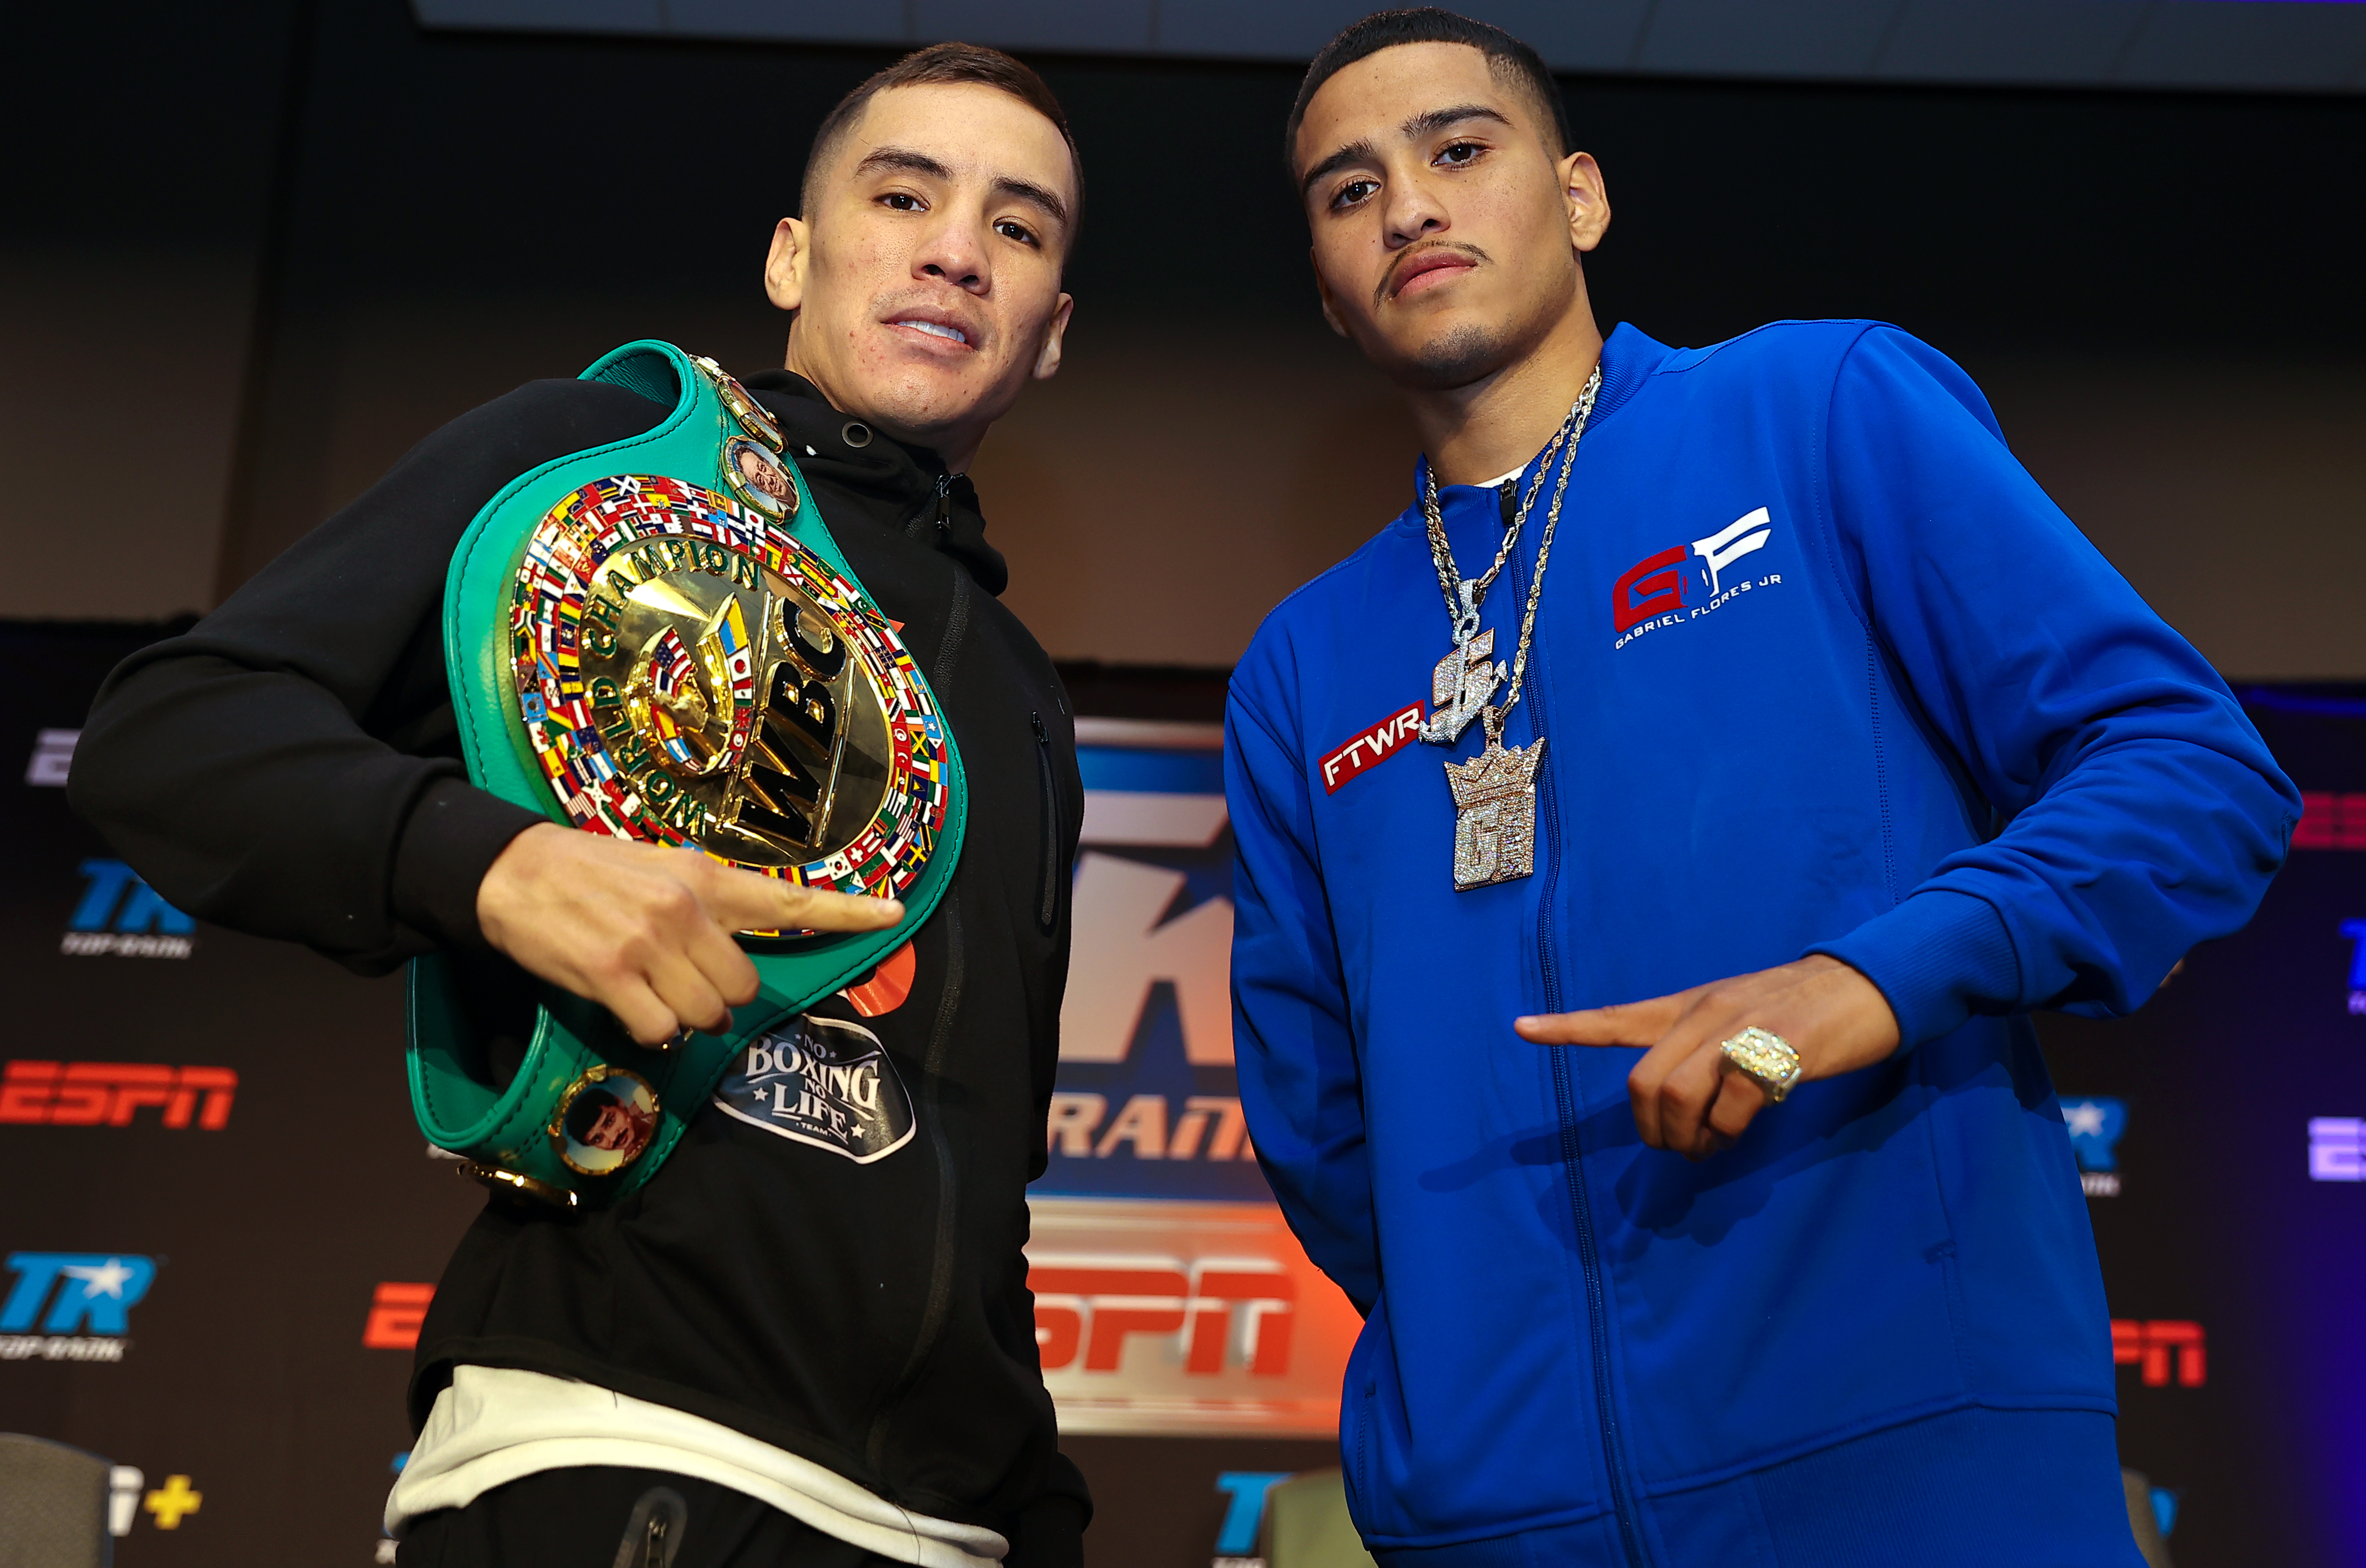 WBC super featherweight champion Oscar Valdez (L) and Gabriel Flores Jr (R) pose after the press conference at Casino del Sol on September 08, 2021 in Tucson, Arizona.